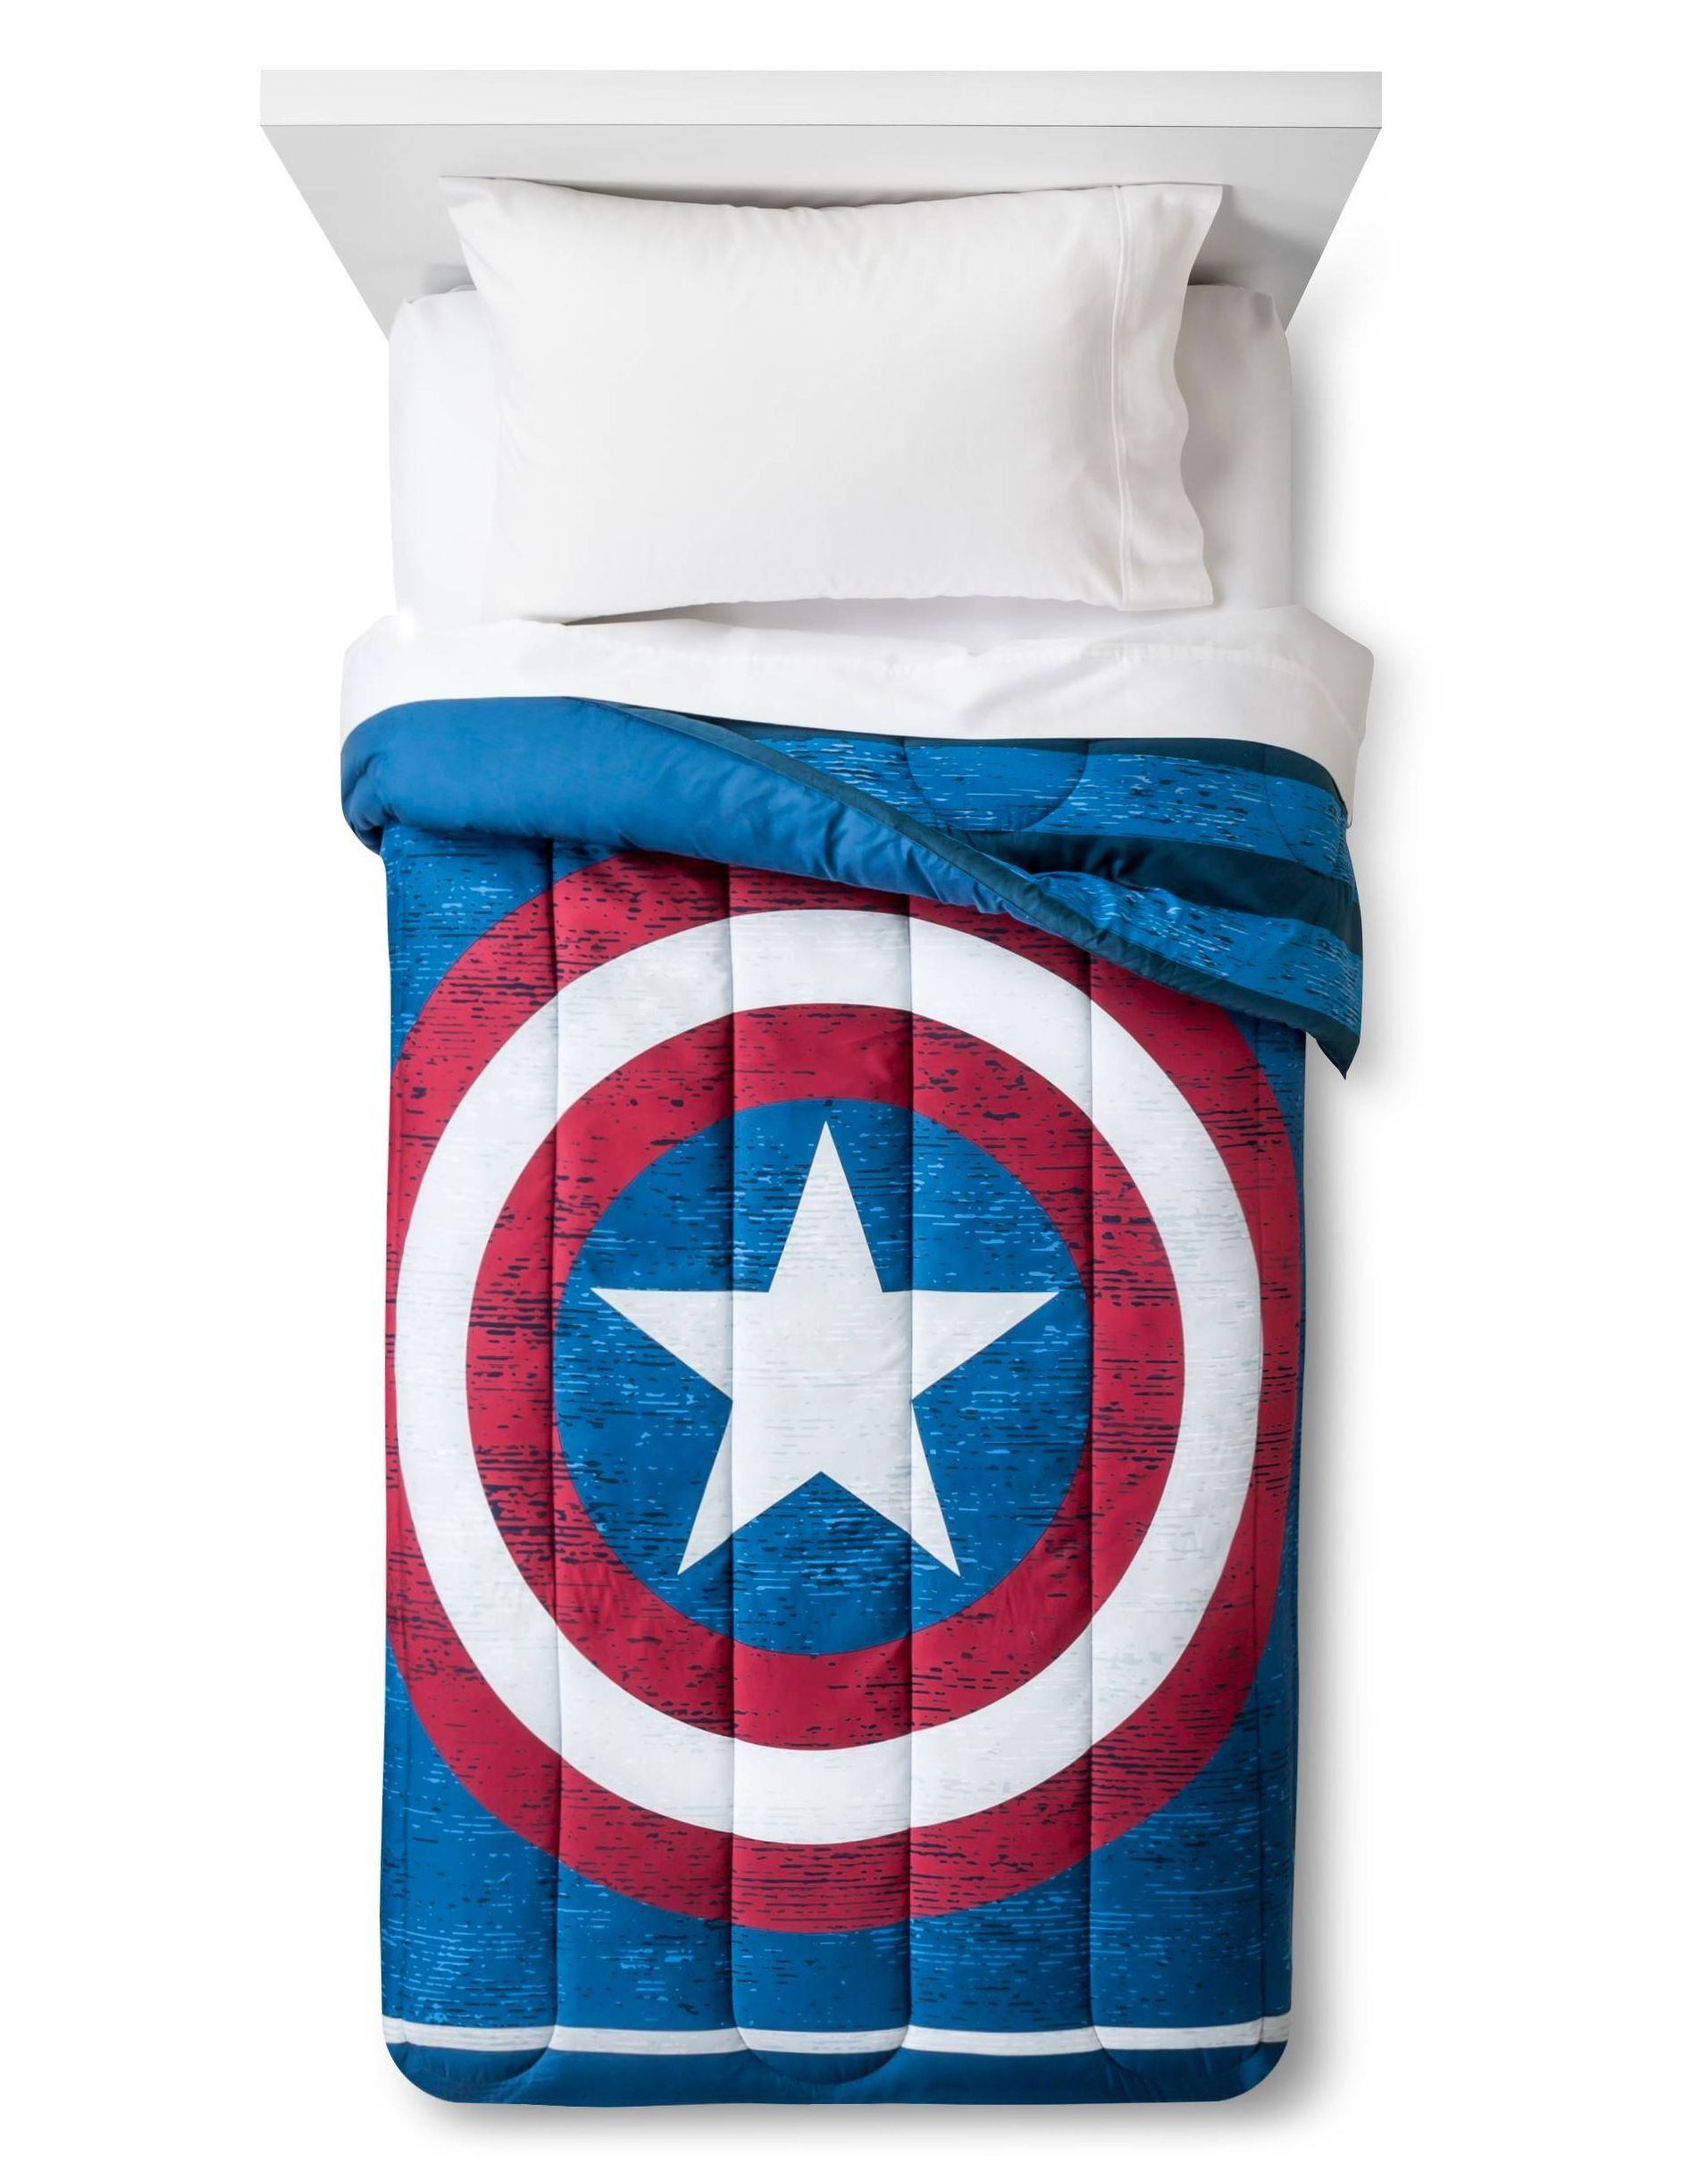 Let Him Snuggle Up With His Favorite Superheroes With The